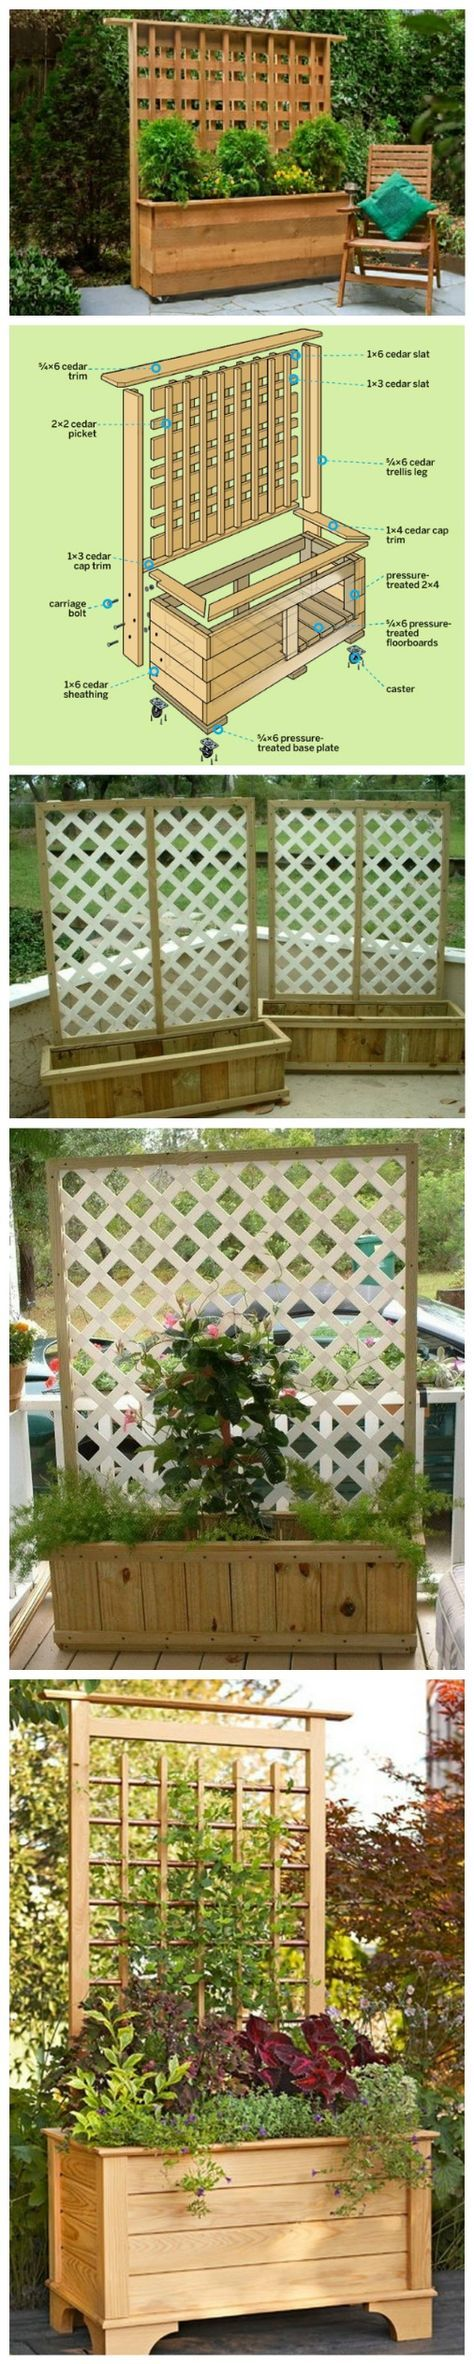 The 5 Secrets For Success With Hanging Baskets | Walnut stain, Stability  and Screens